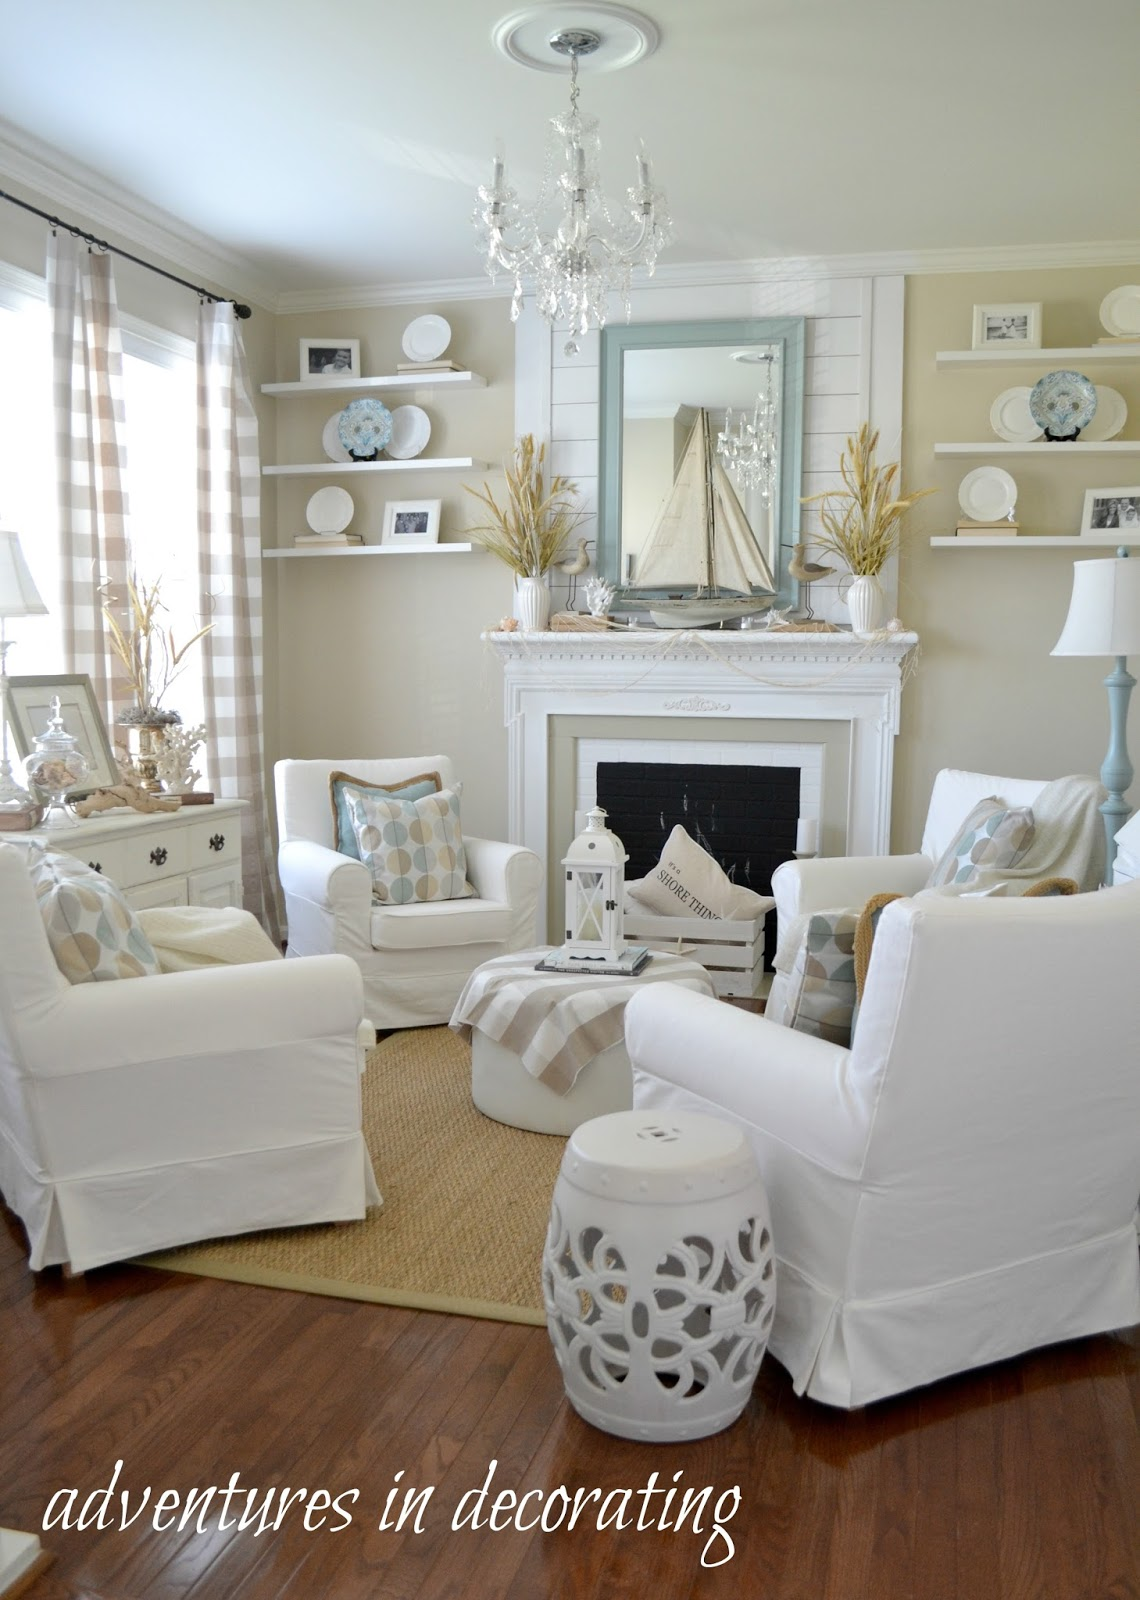 Adventures in decorating our coastal sitting room for Sitting room ideas pictures